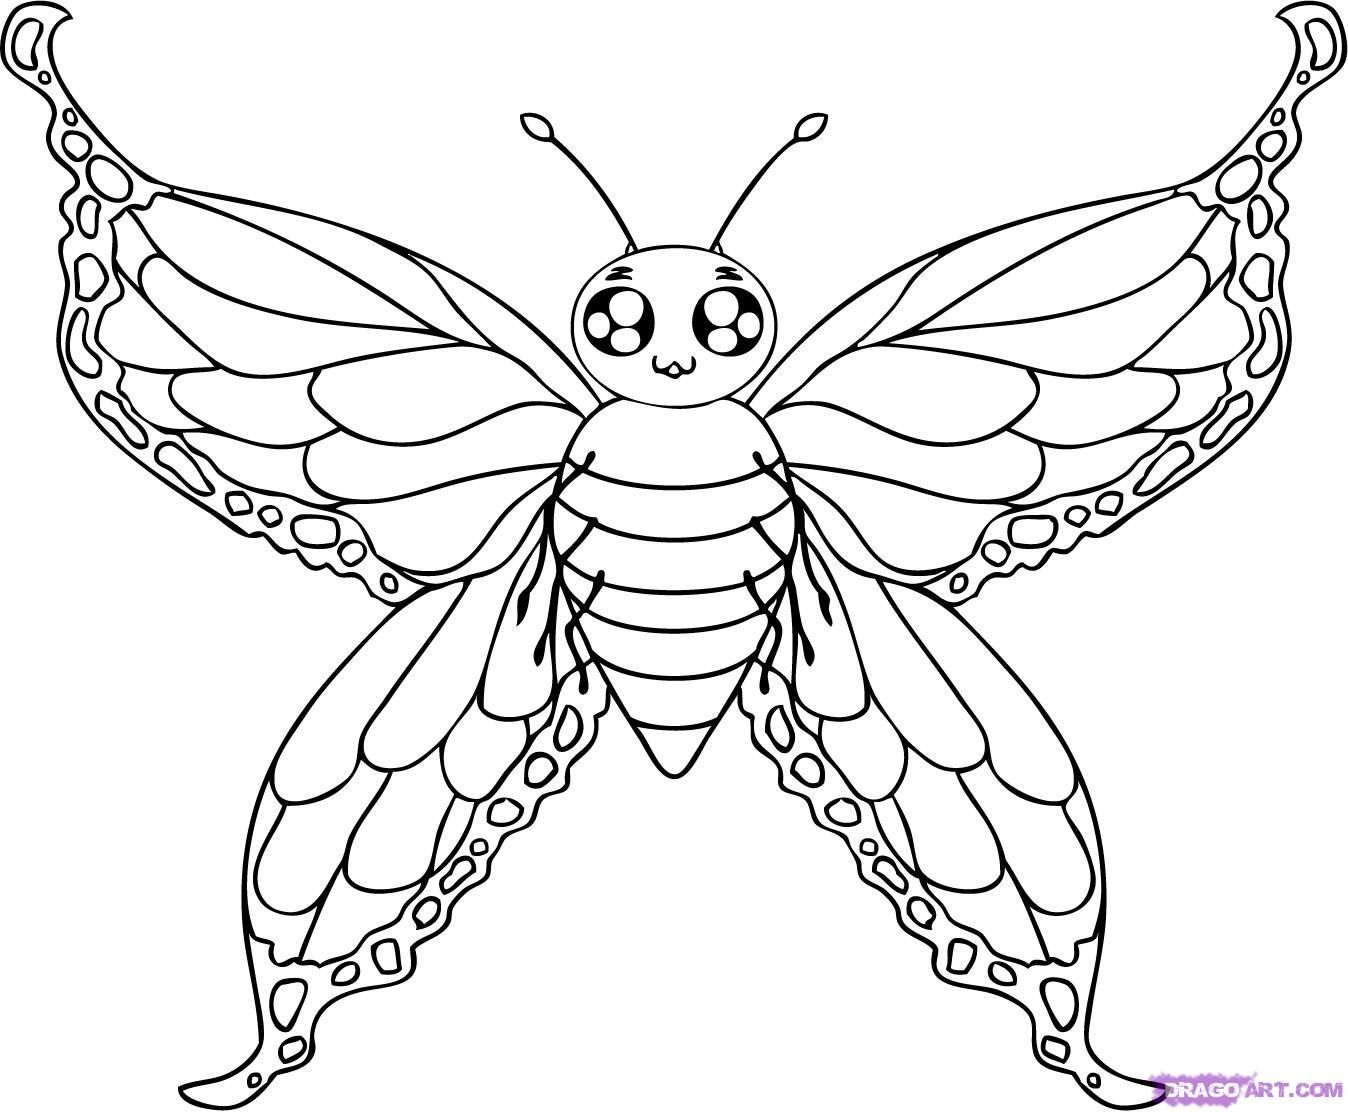 Butterfly coloring pages on pinterest - Butterfly Coloring Pages Printable Coloring Pages Sheets For Kids Get The Latest Free Butterfly Coloring Pages Images Favorite Coloring Pages To Print